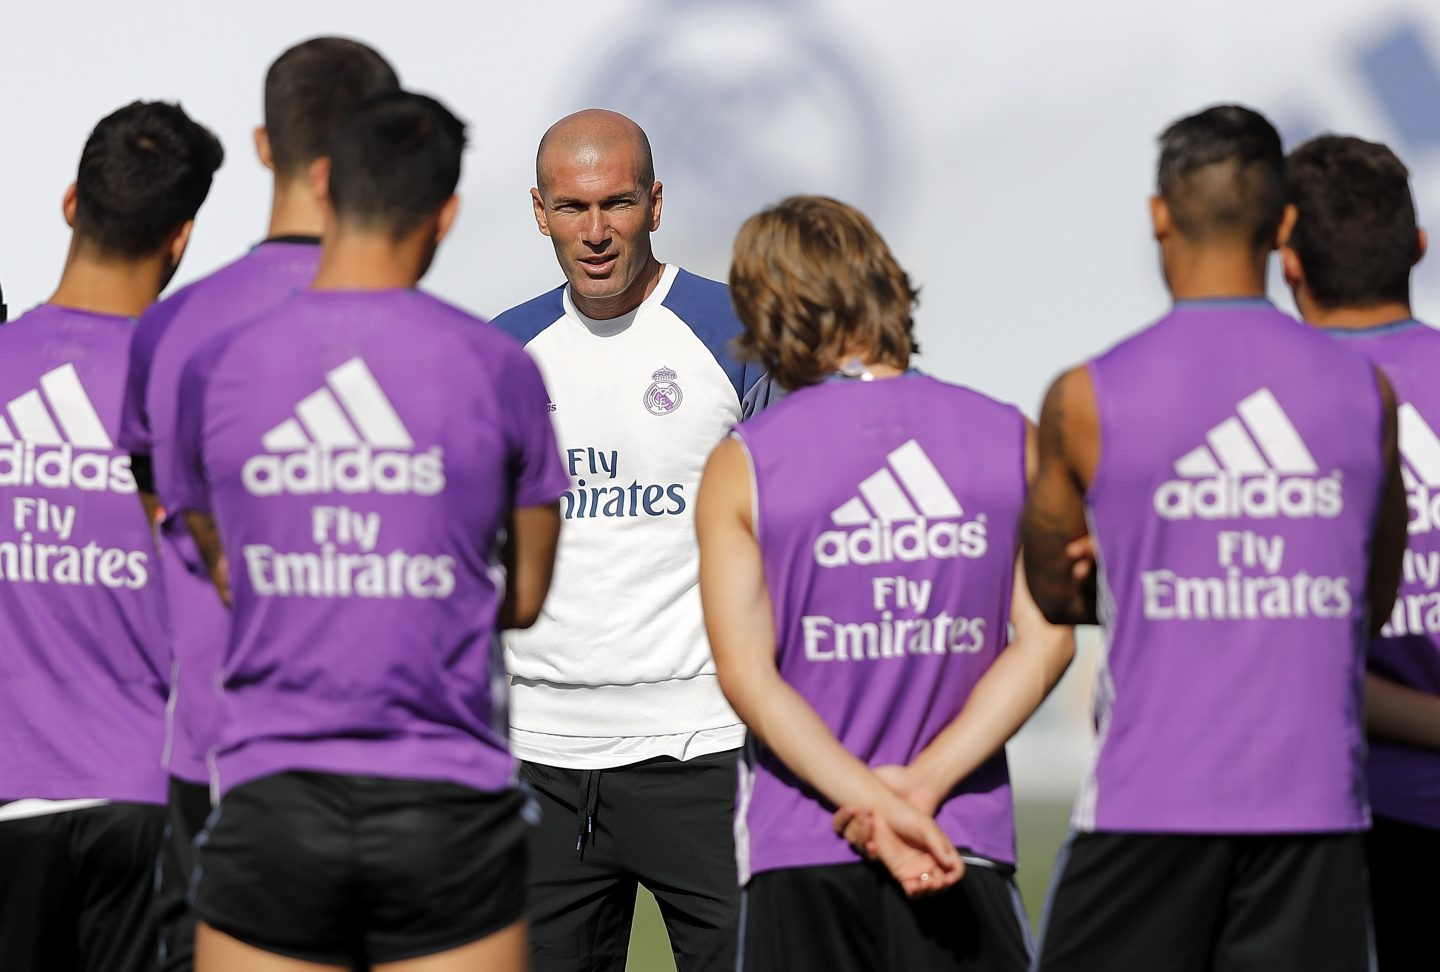 adidas-Real-Madrid-Zinédine-Zidane-team-football-science